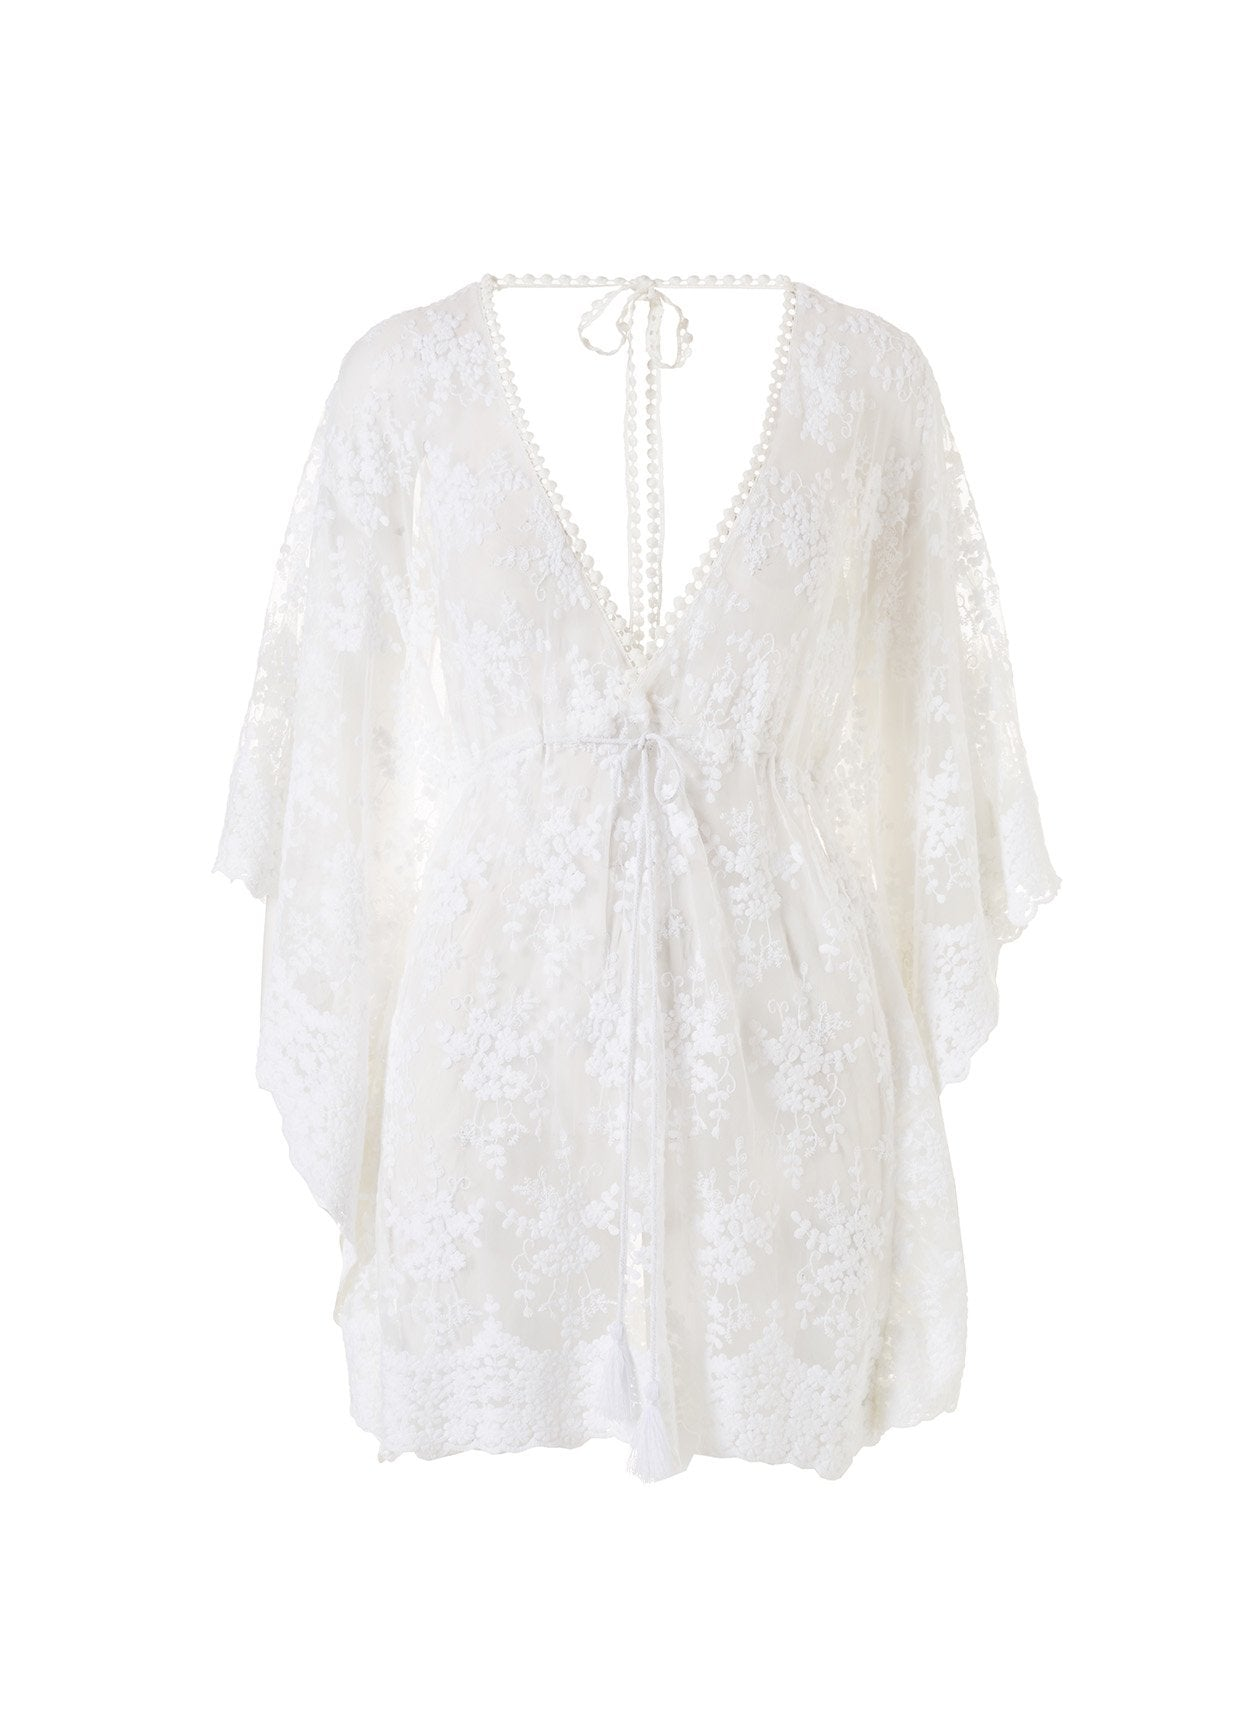 Amara White Lace Open Back Short Kaftan 2020